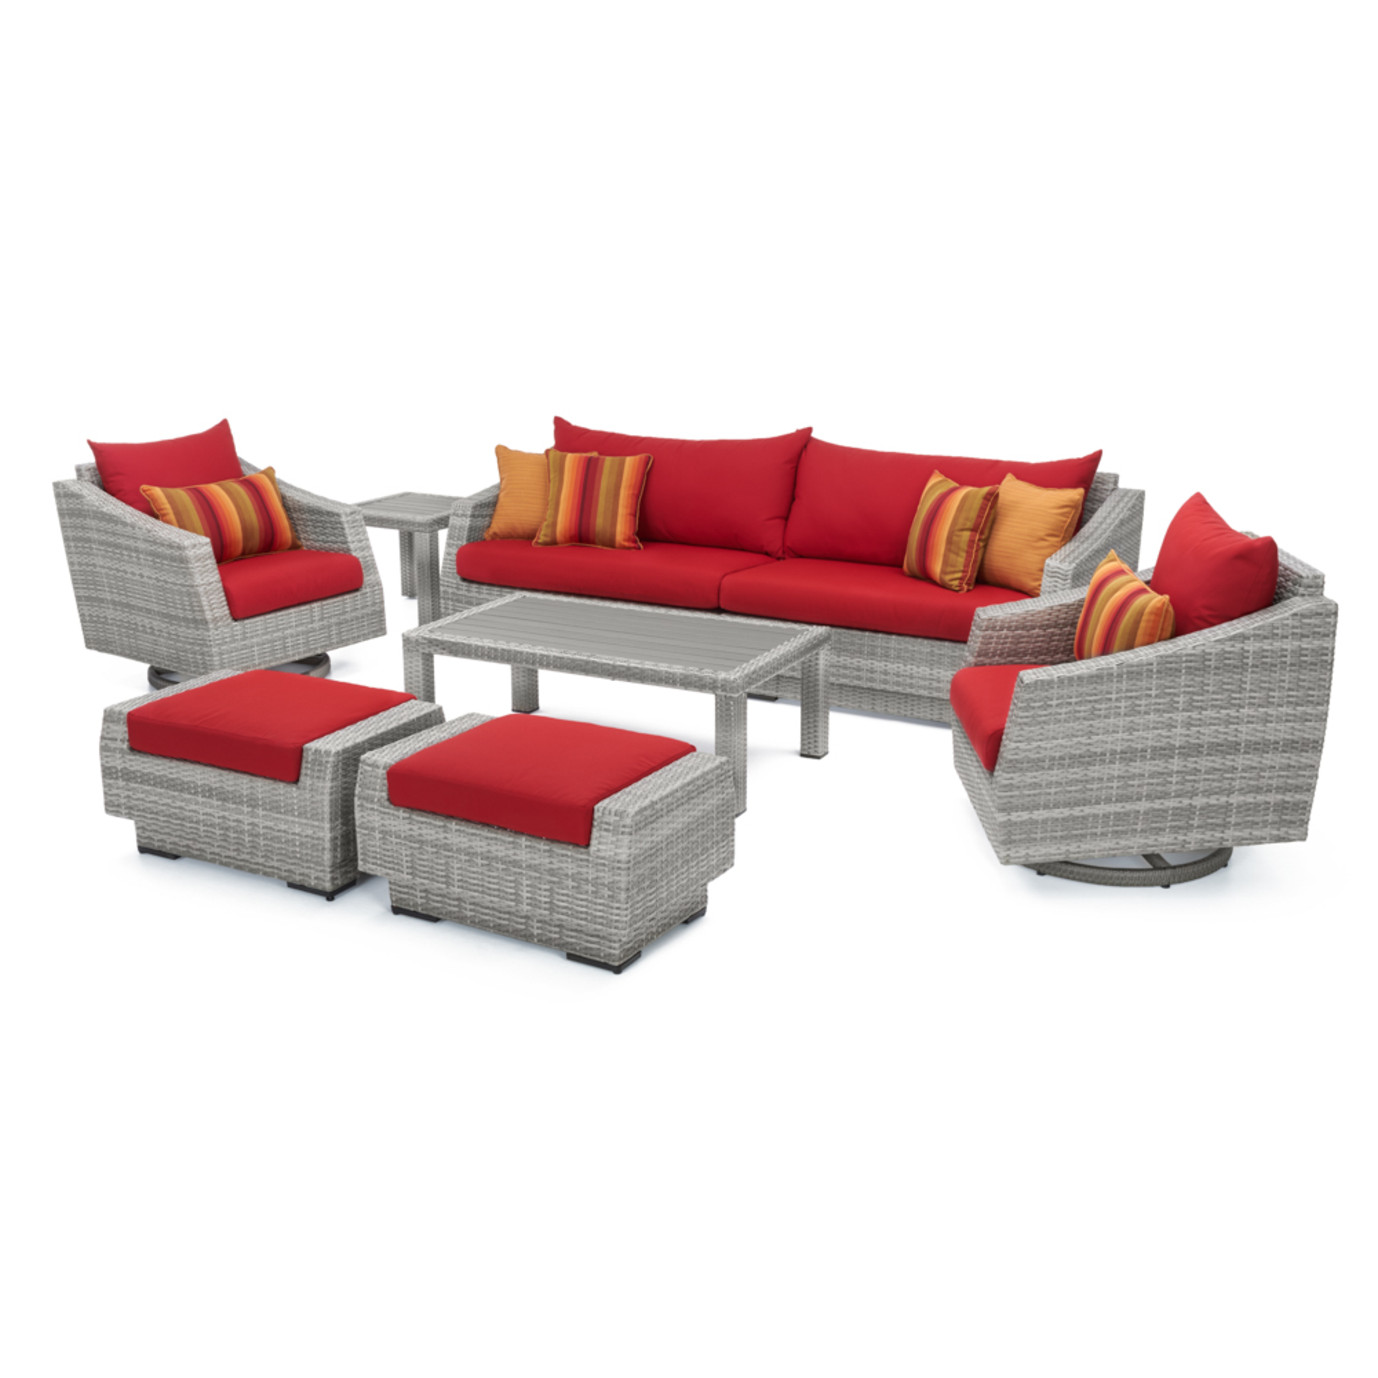 Cannes™ 8pc Deluxe Sofa & Club Chair Set - Sunset Red